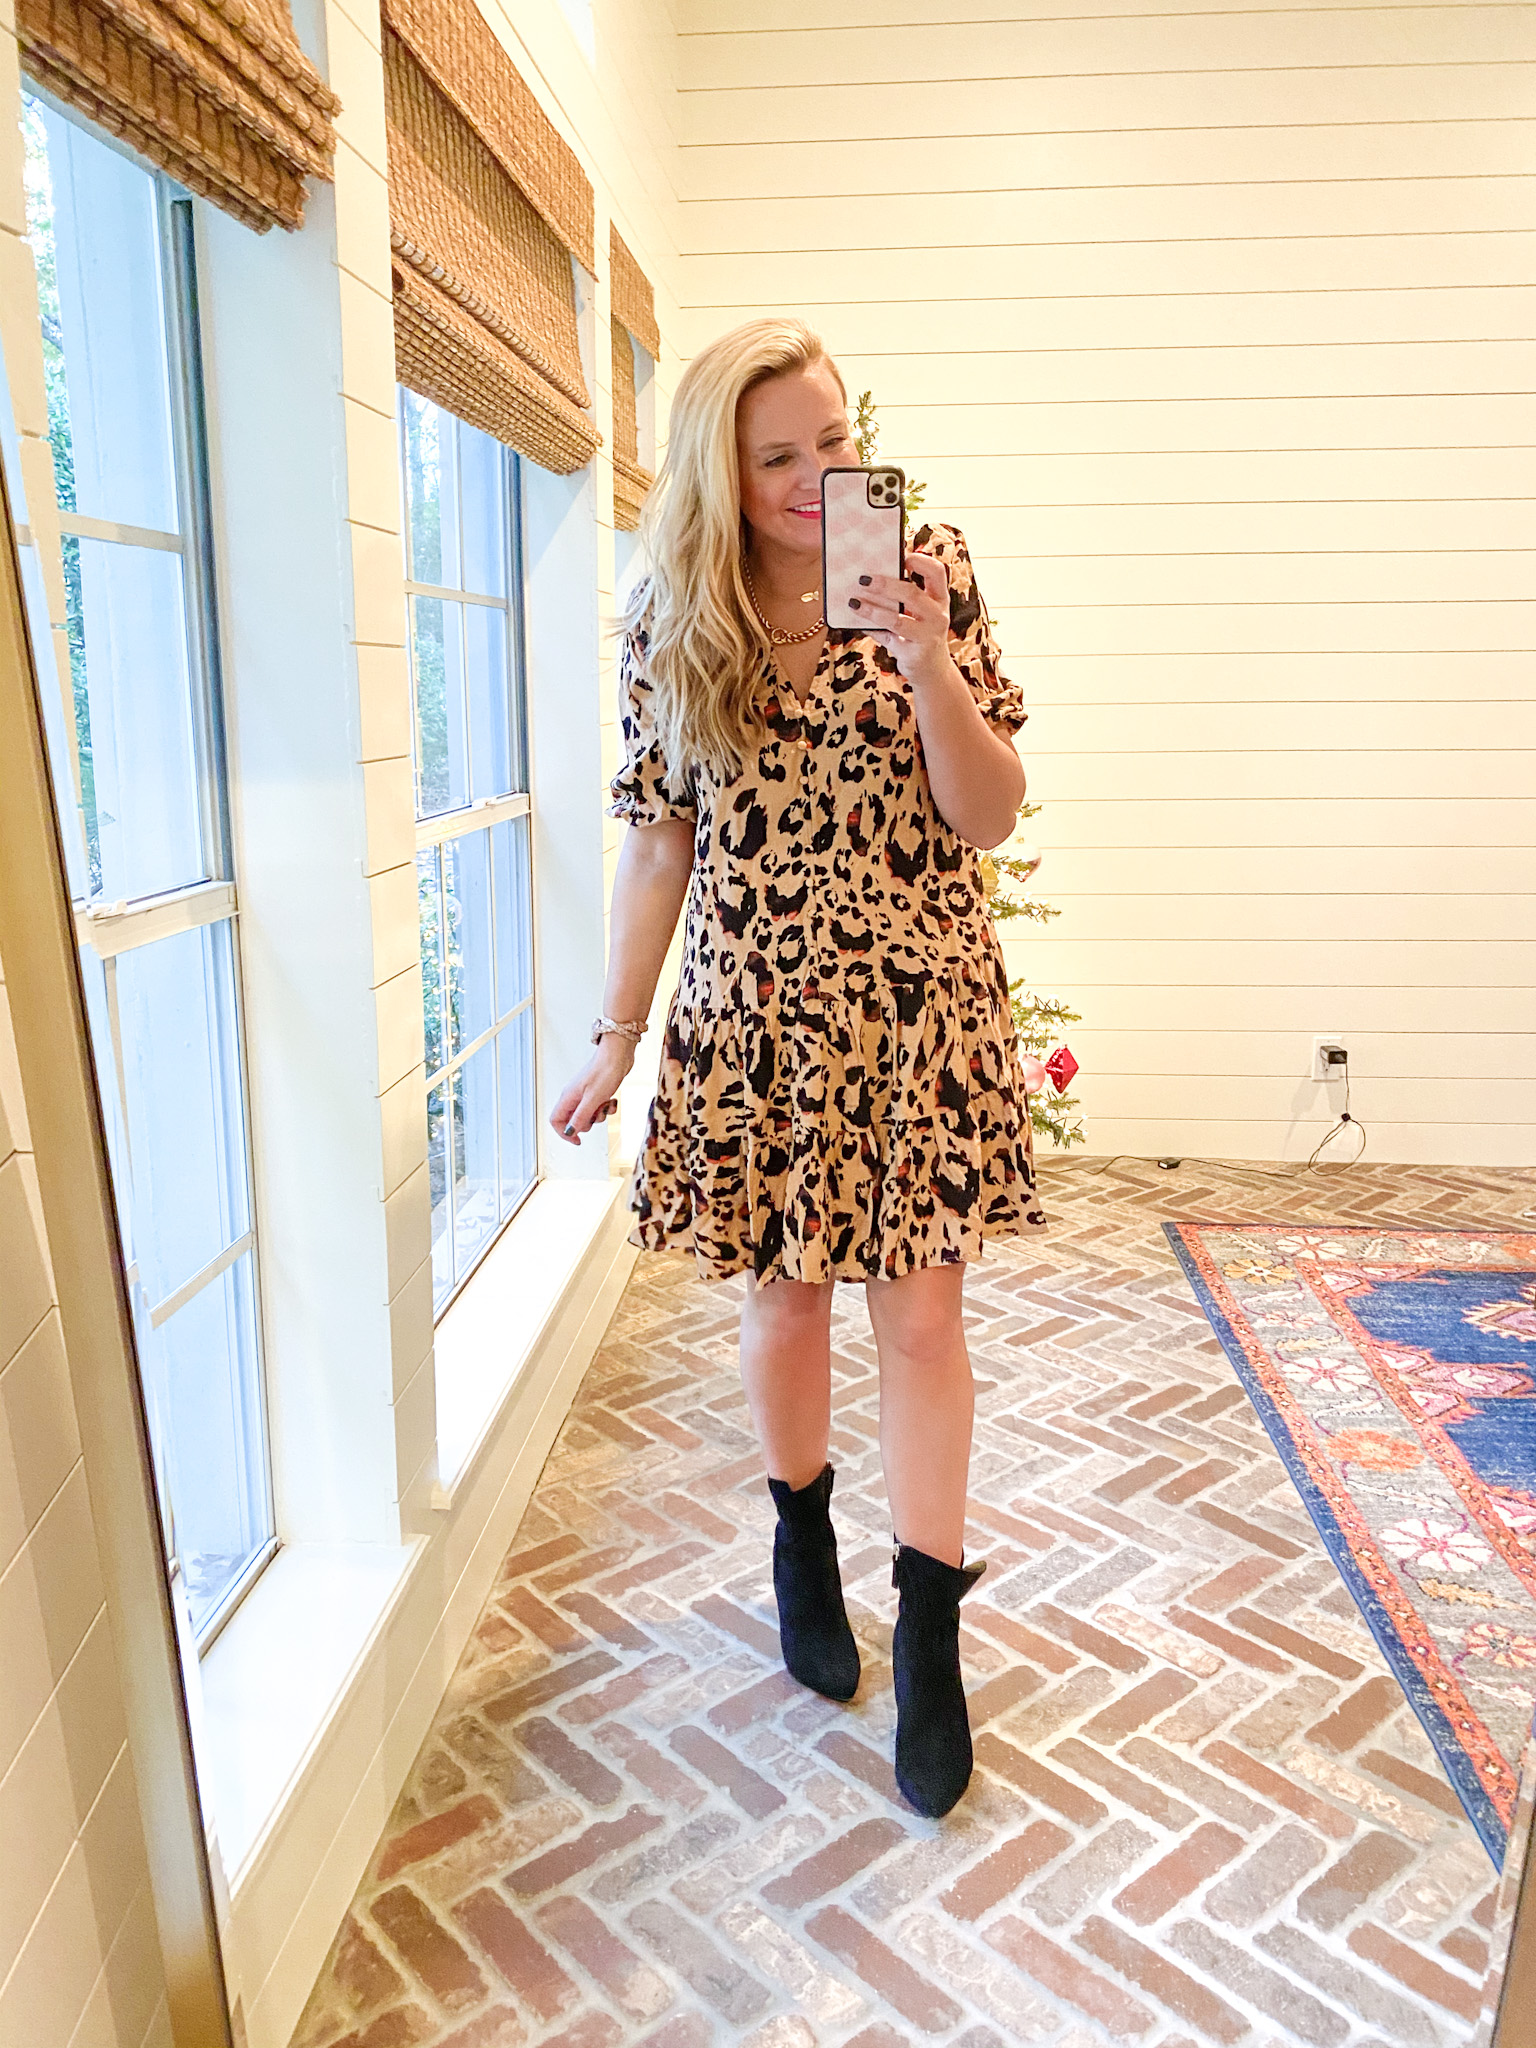 Walmart Womens Clothes by popular Houston fashion blog, Fancy Ashley: image of a woman wearing a Walmart Scoop Women's Printed Tiered Dress and Walmart Scoop black suede booties.